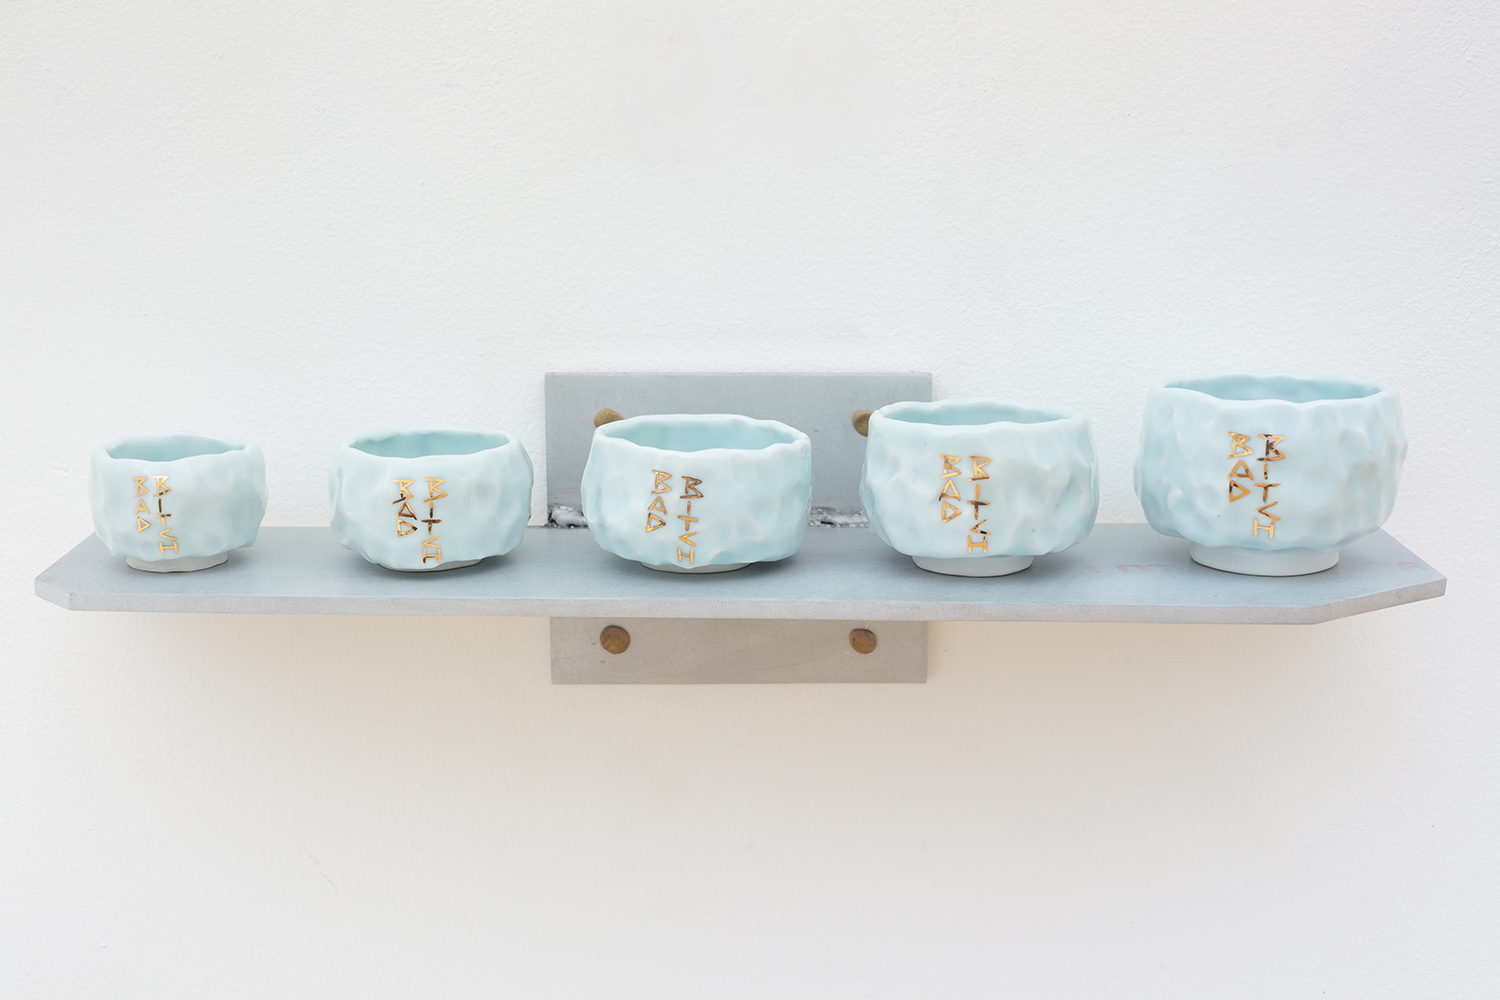 """Bad Bitch Cup Series  2016 Glazed Porcelain, Gold Luster, Aluminum, Sculpey Clay 5"""" x 20"""" x 6"""""""